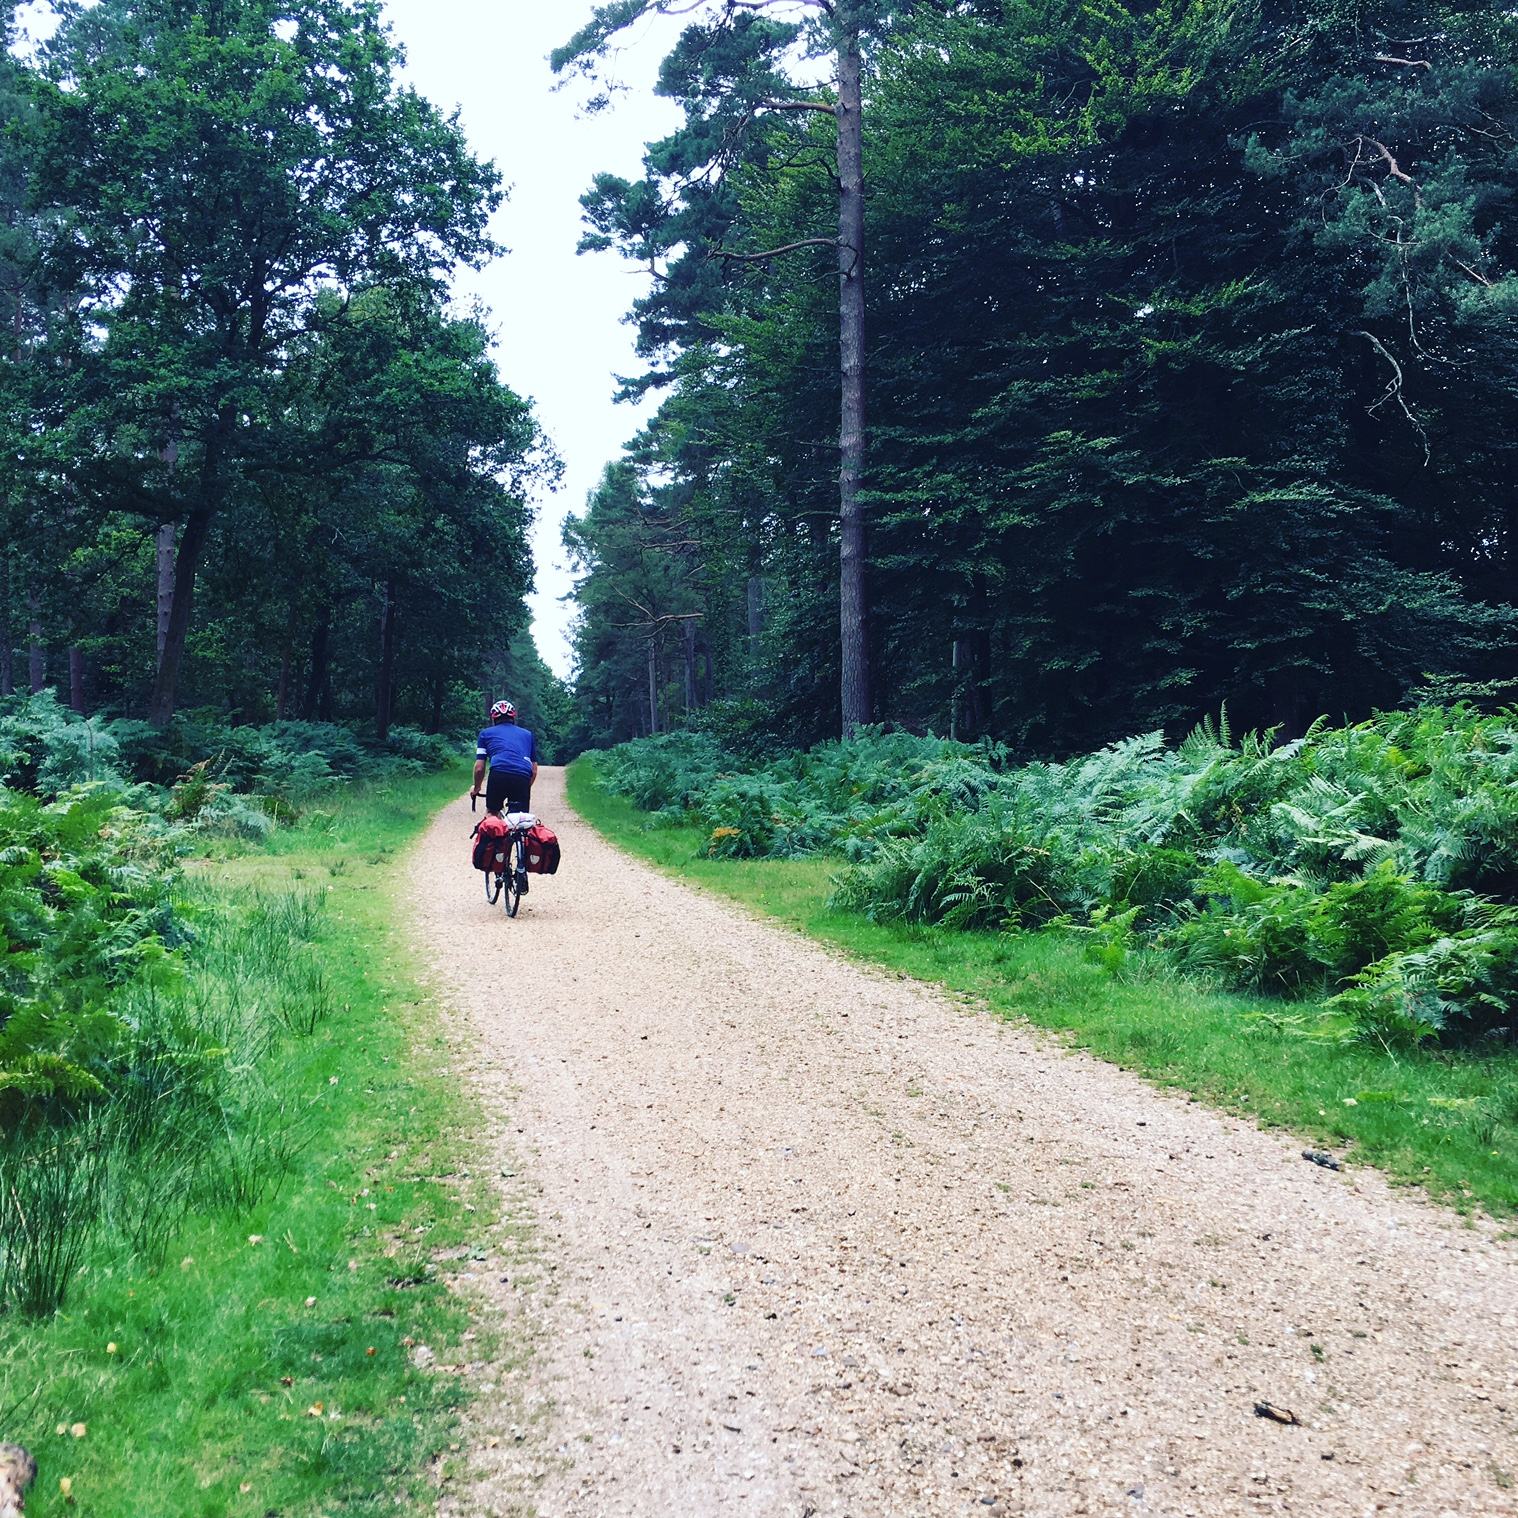 Zinging over gravel roads in the New Forest and charging over rutted mud paths